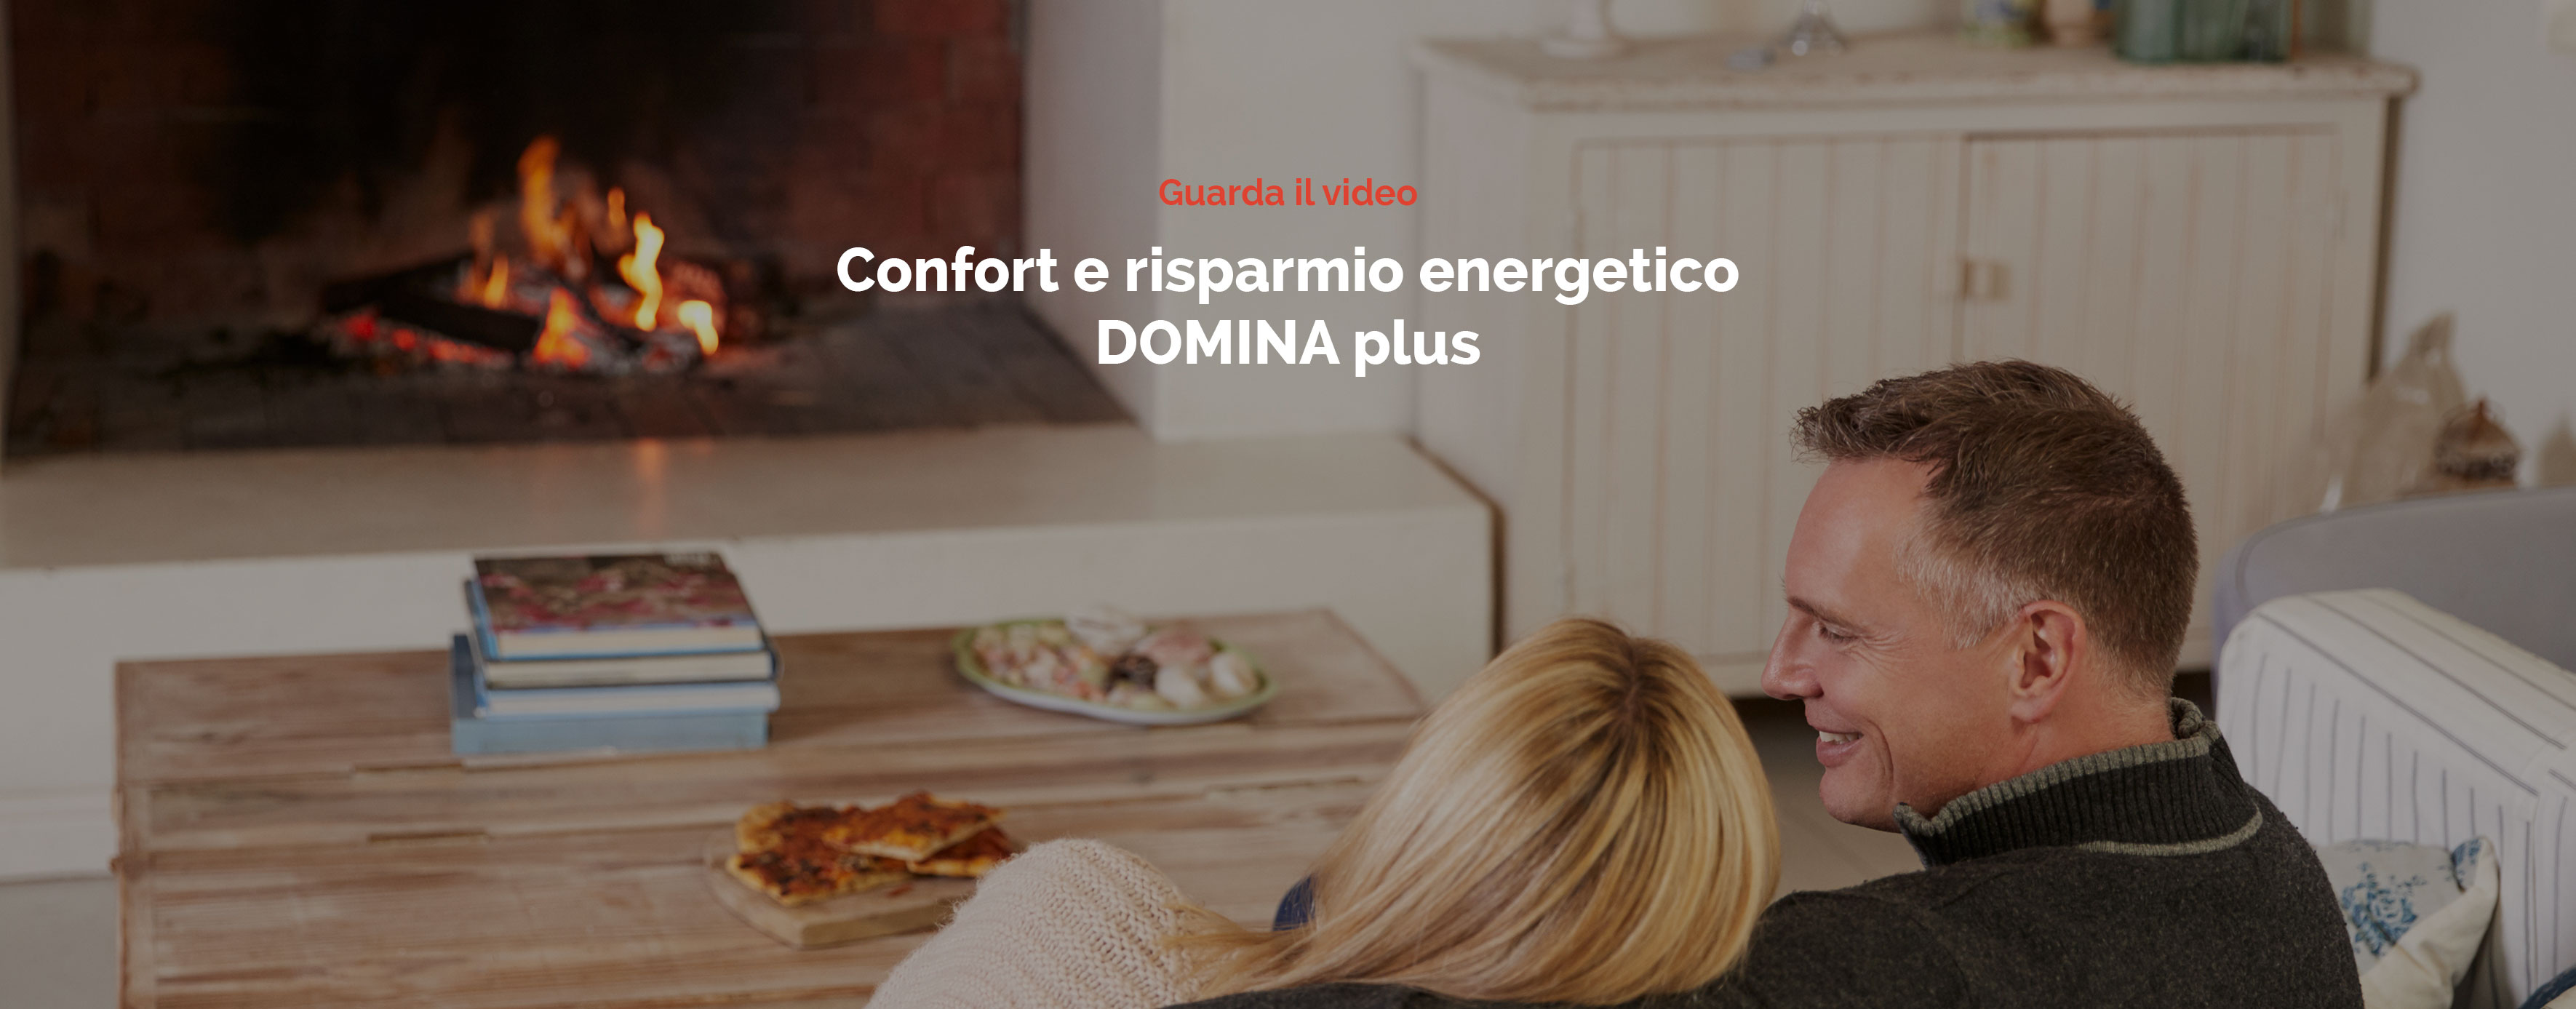 Video Domotica Confort e Risparmio Energetico - Ave Domina Plus